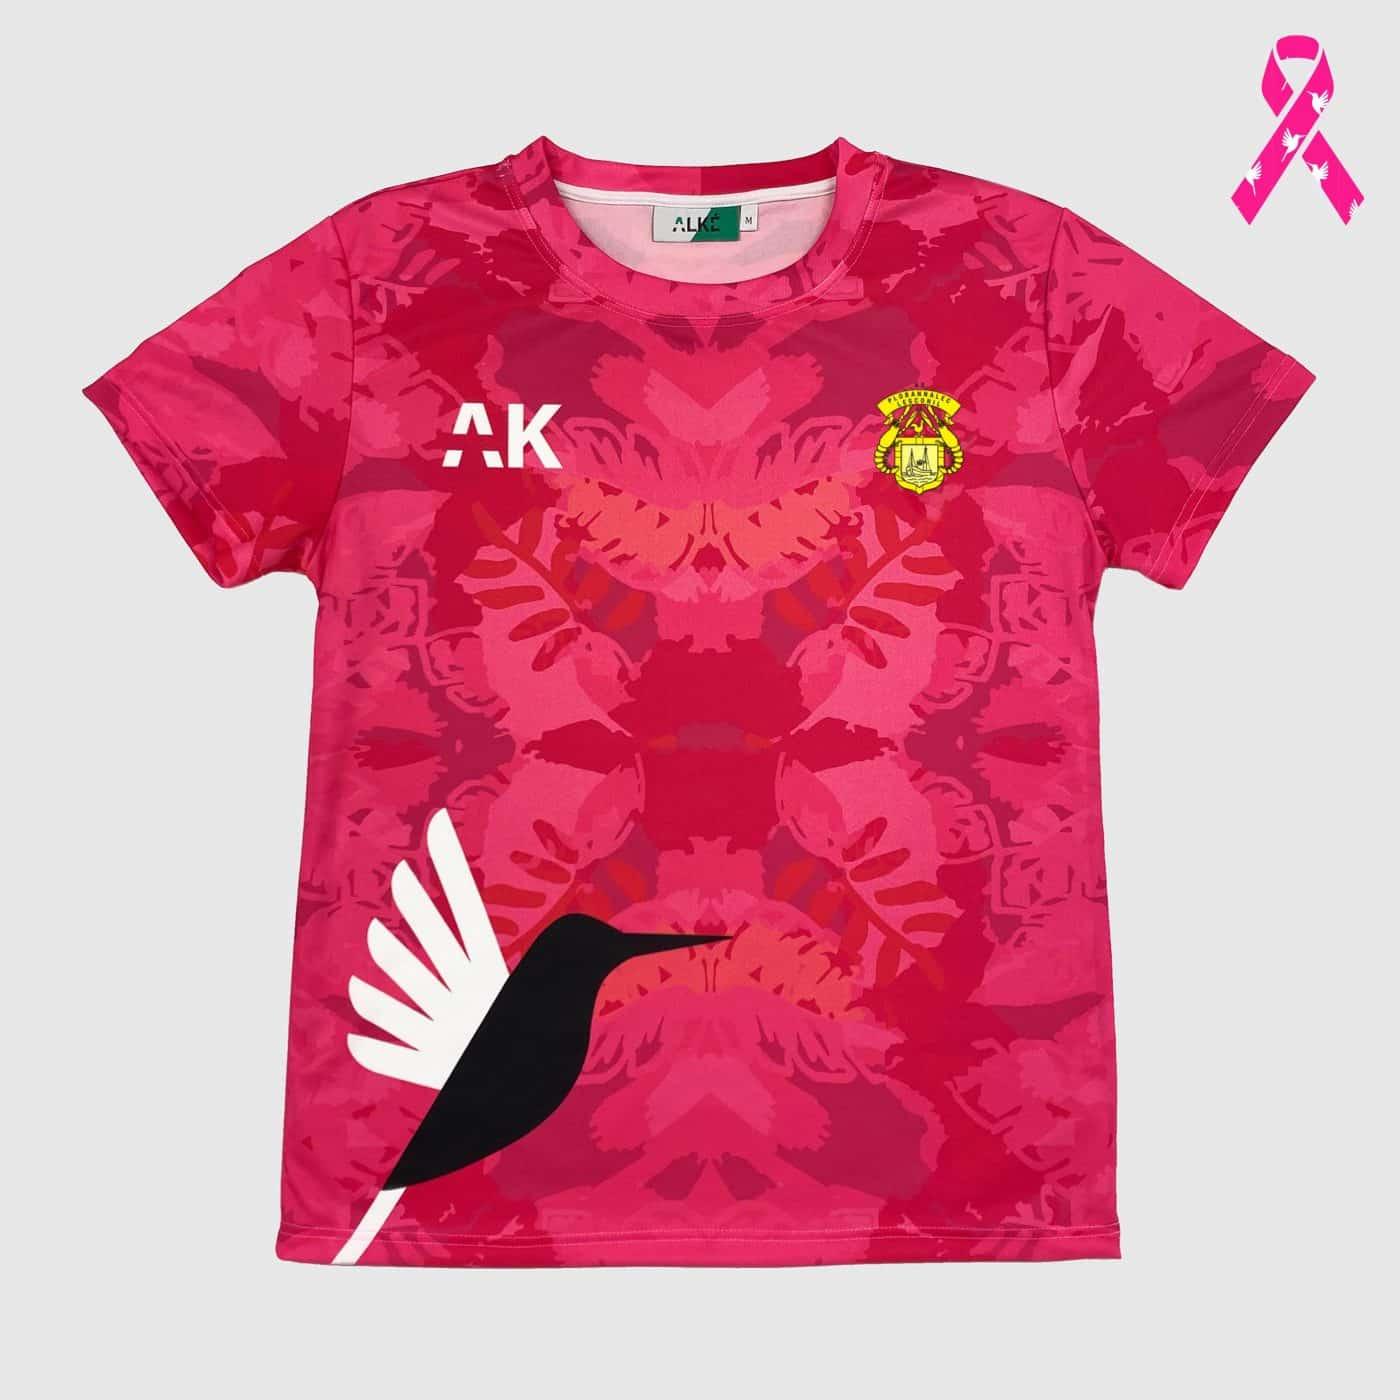 maillot-octobre-rose-alke-8